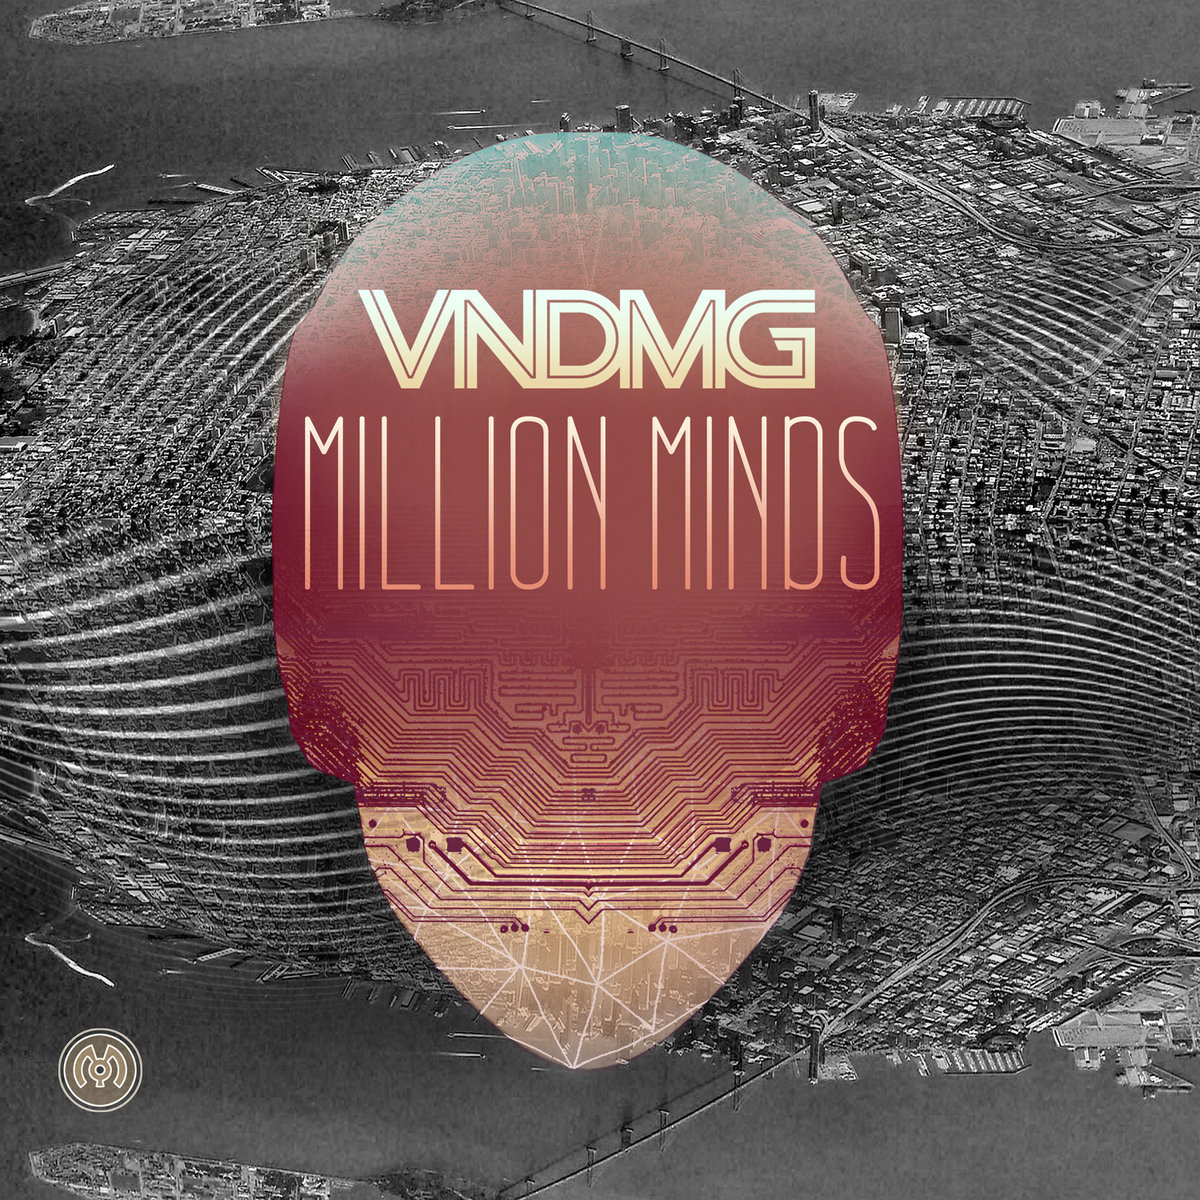 VNDMG - Daggers at Dawn (Subp Yao Remix) @ 'Million Minds' album (electronic, dubstep)